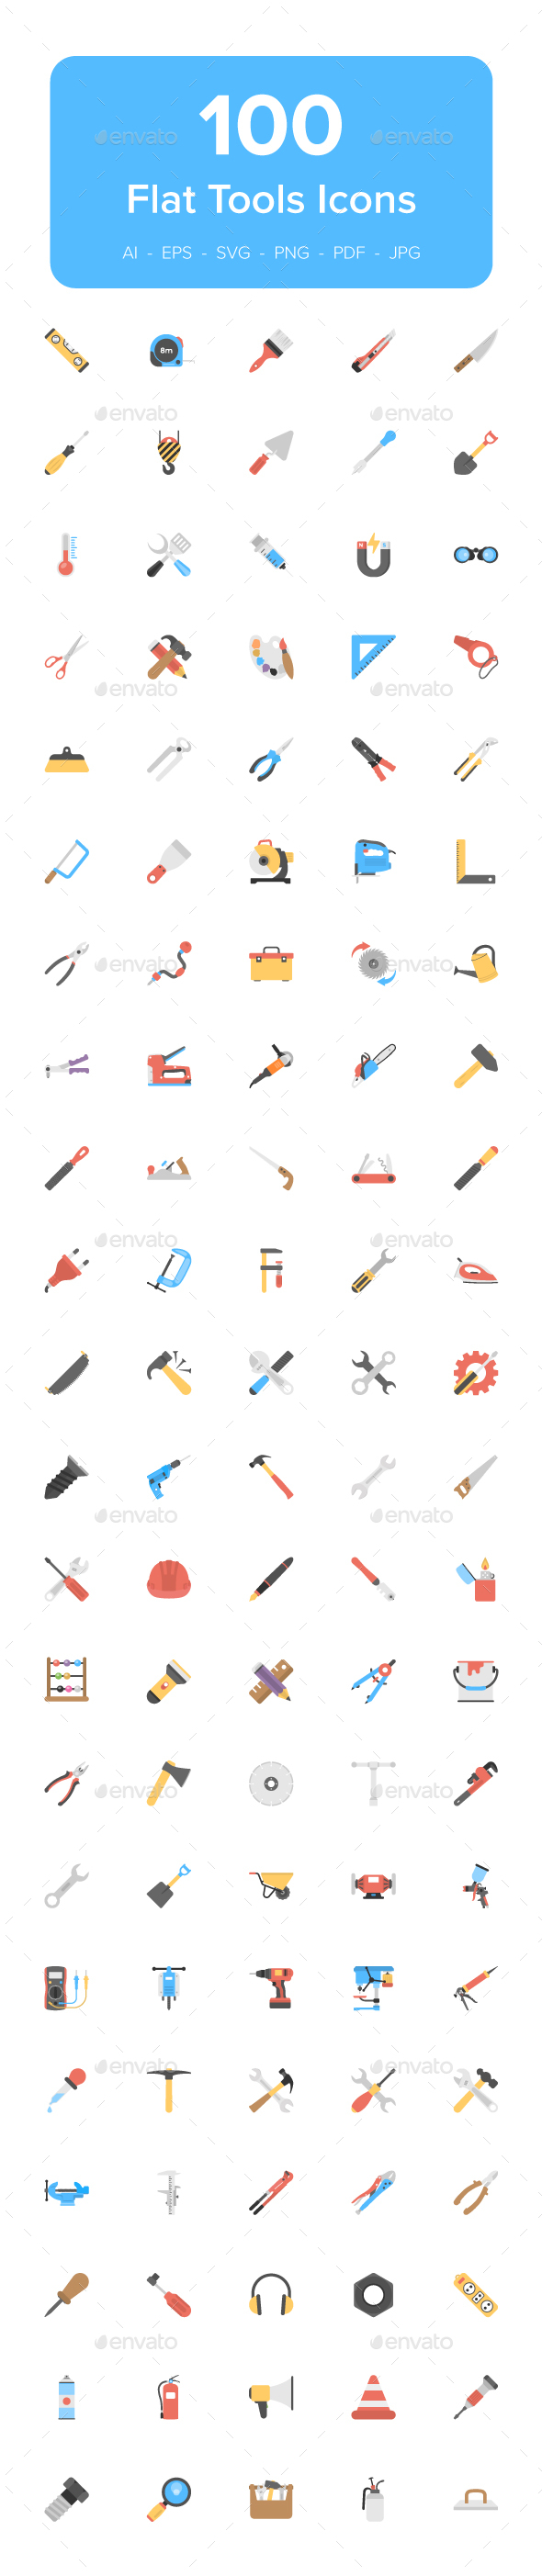 110 Tool Flat Vector Icons - Icons